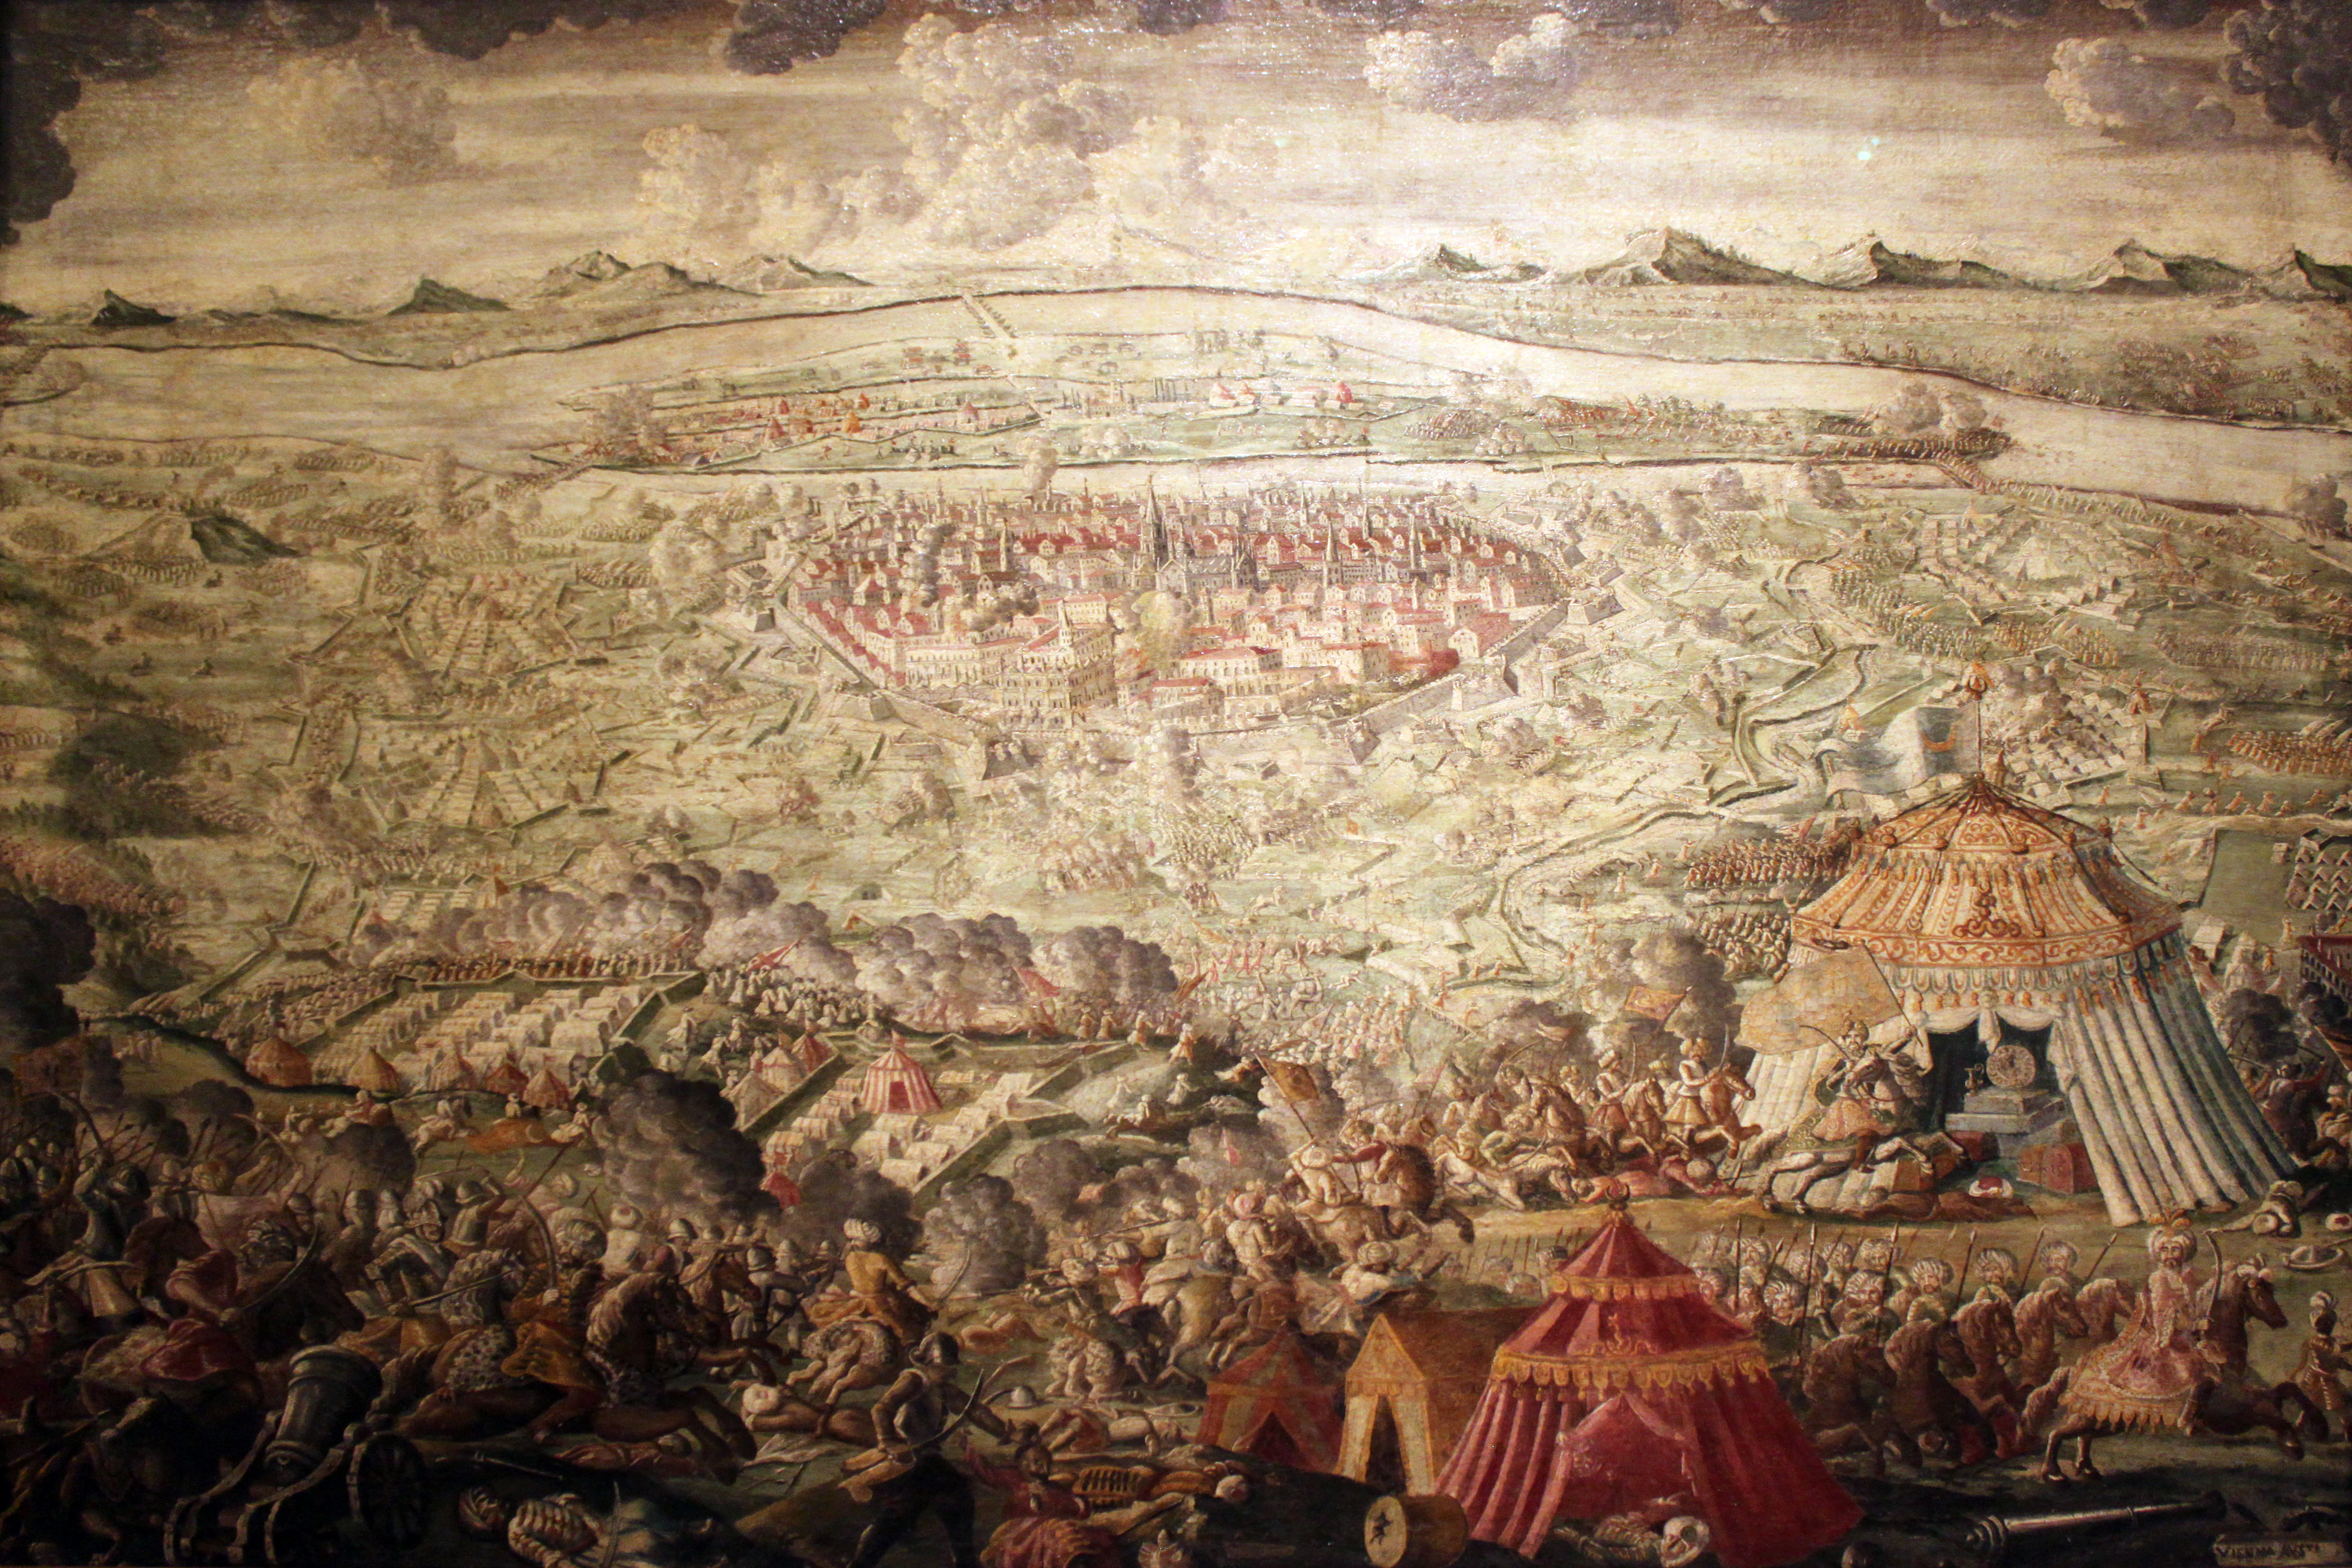 a history of the siege of vienna in 1683 It is often regarded as one of the most important events in european history the battle of vienna raged on the 12 th of september 1683, as the high point in what can truly be described as a 'clash of civilizations.